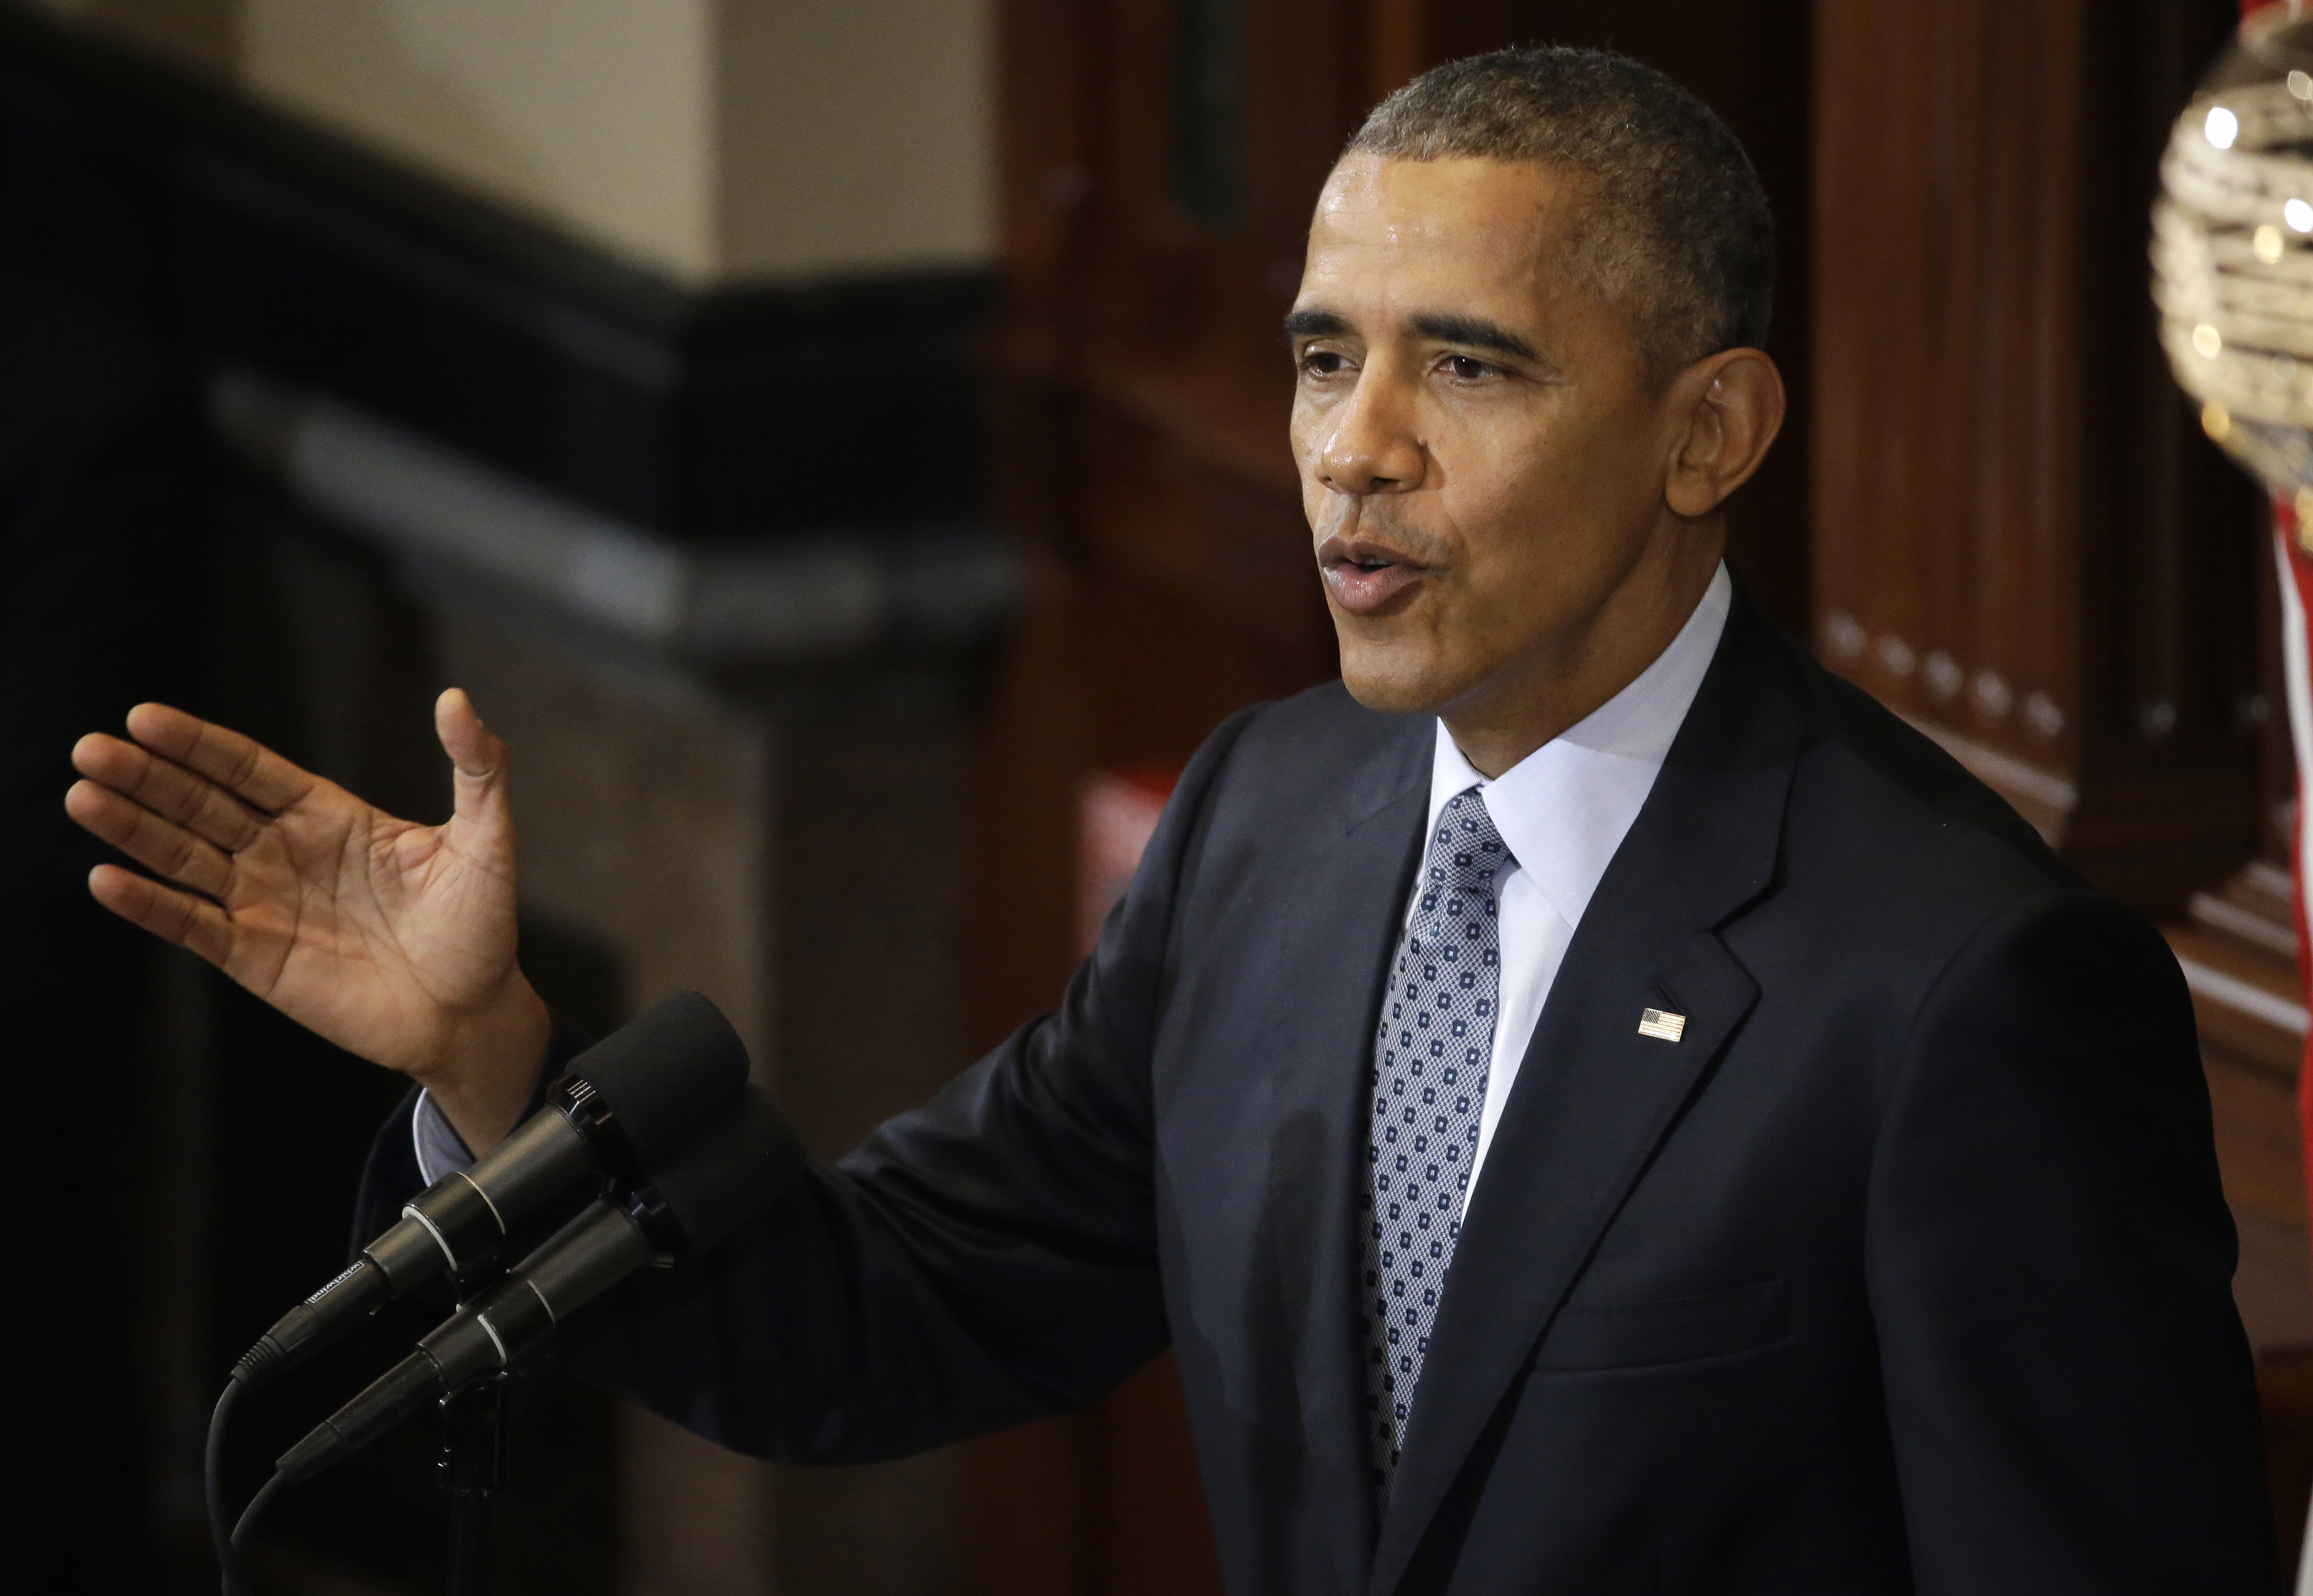 President Barack Obama at the Illinois State Capitol in Springfield, on Feb. 10, 2016.